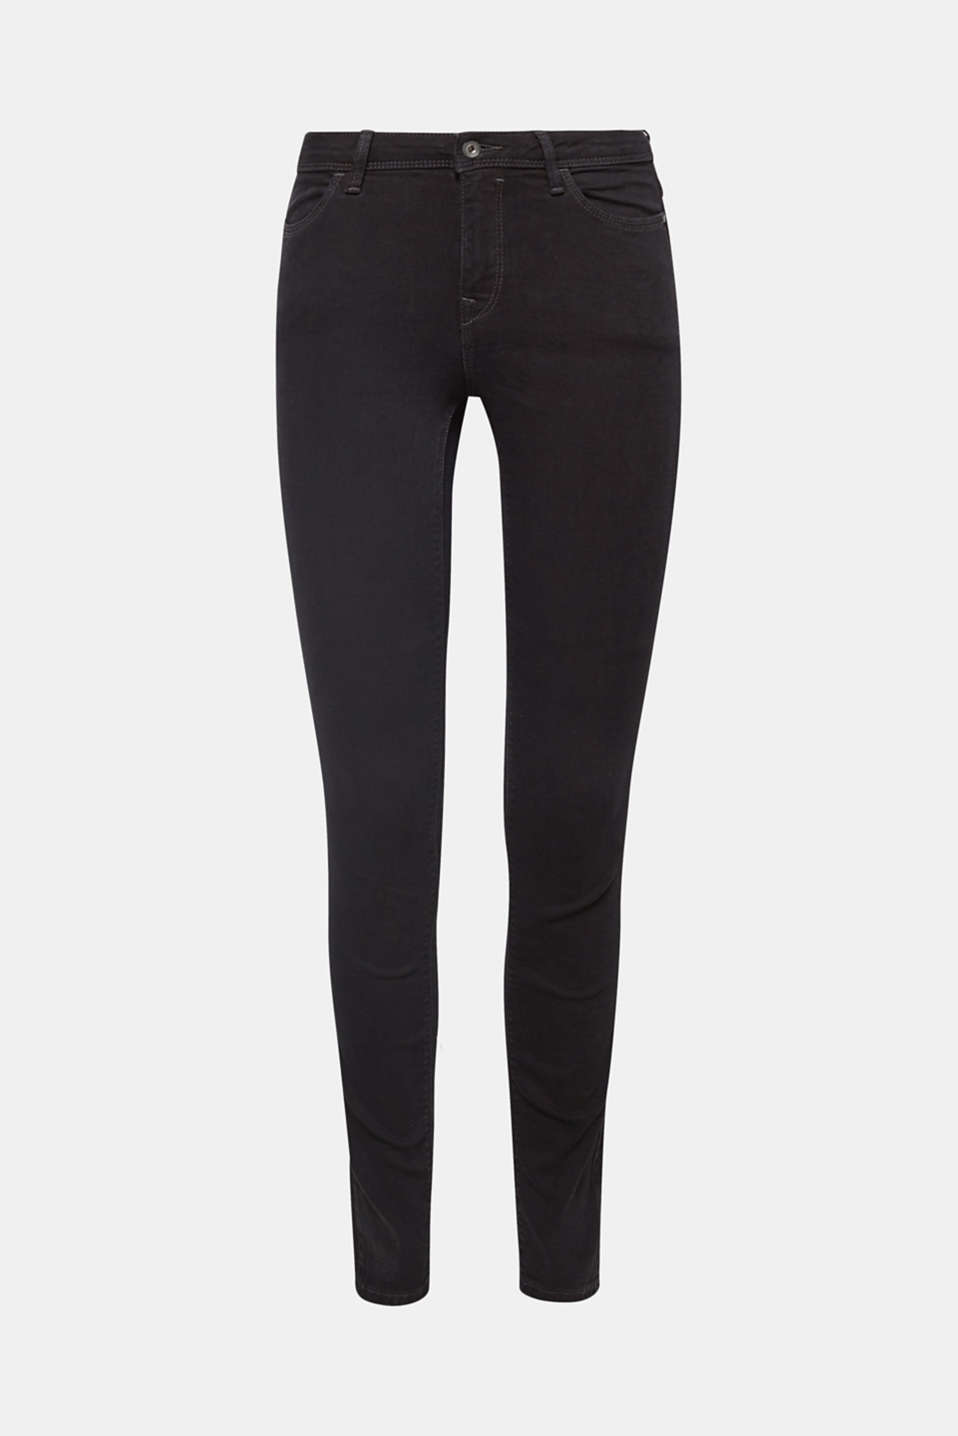 Organic cotton blend jeggings, BLACK RINSE, detail image number 5